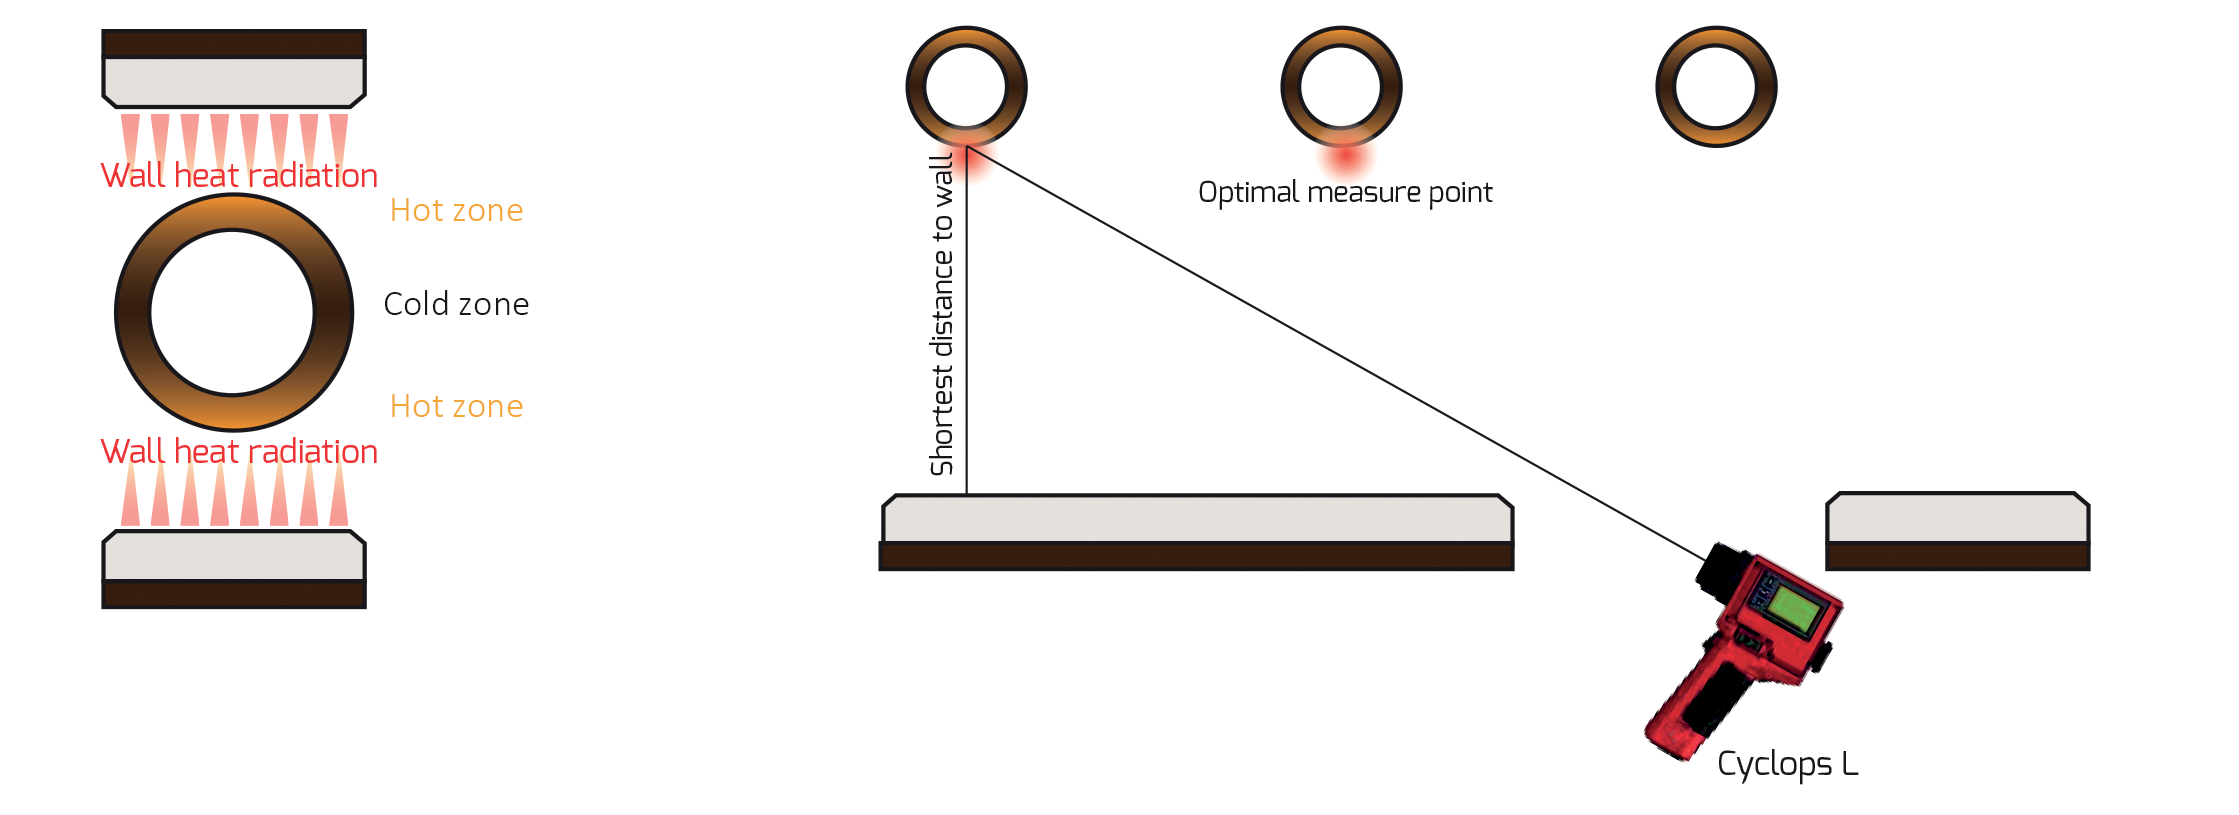 Practical Advice on Using Portable Handheld Pyrometers for measuring Tube Wall Temperature (TWT)